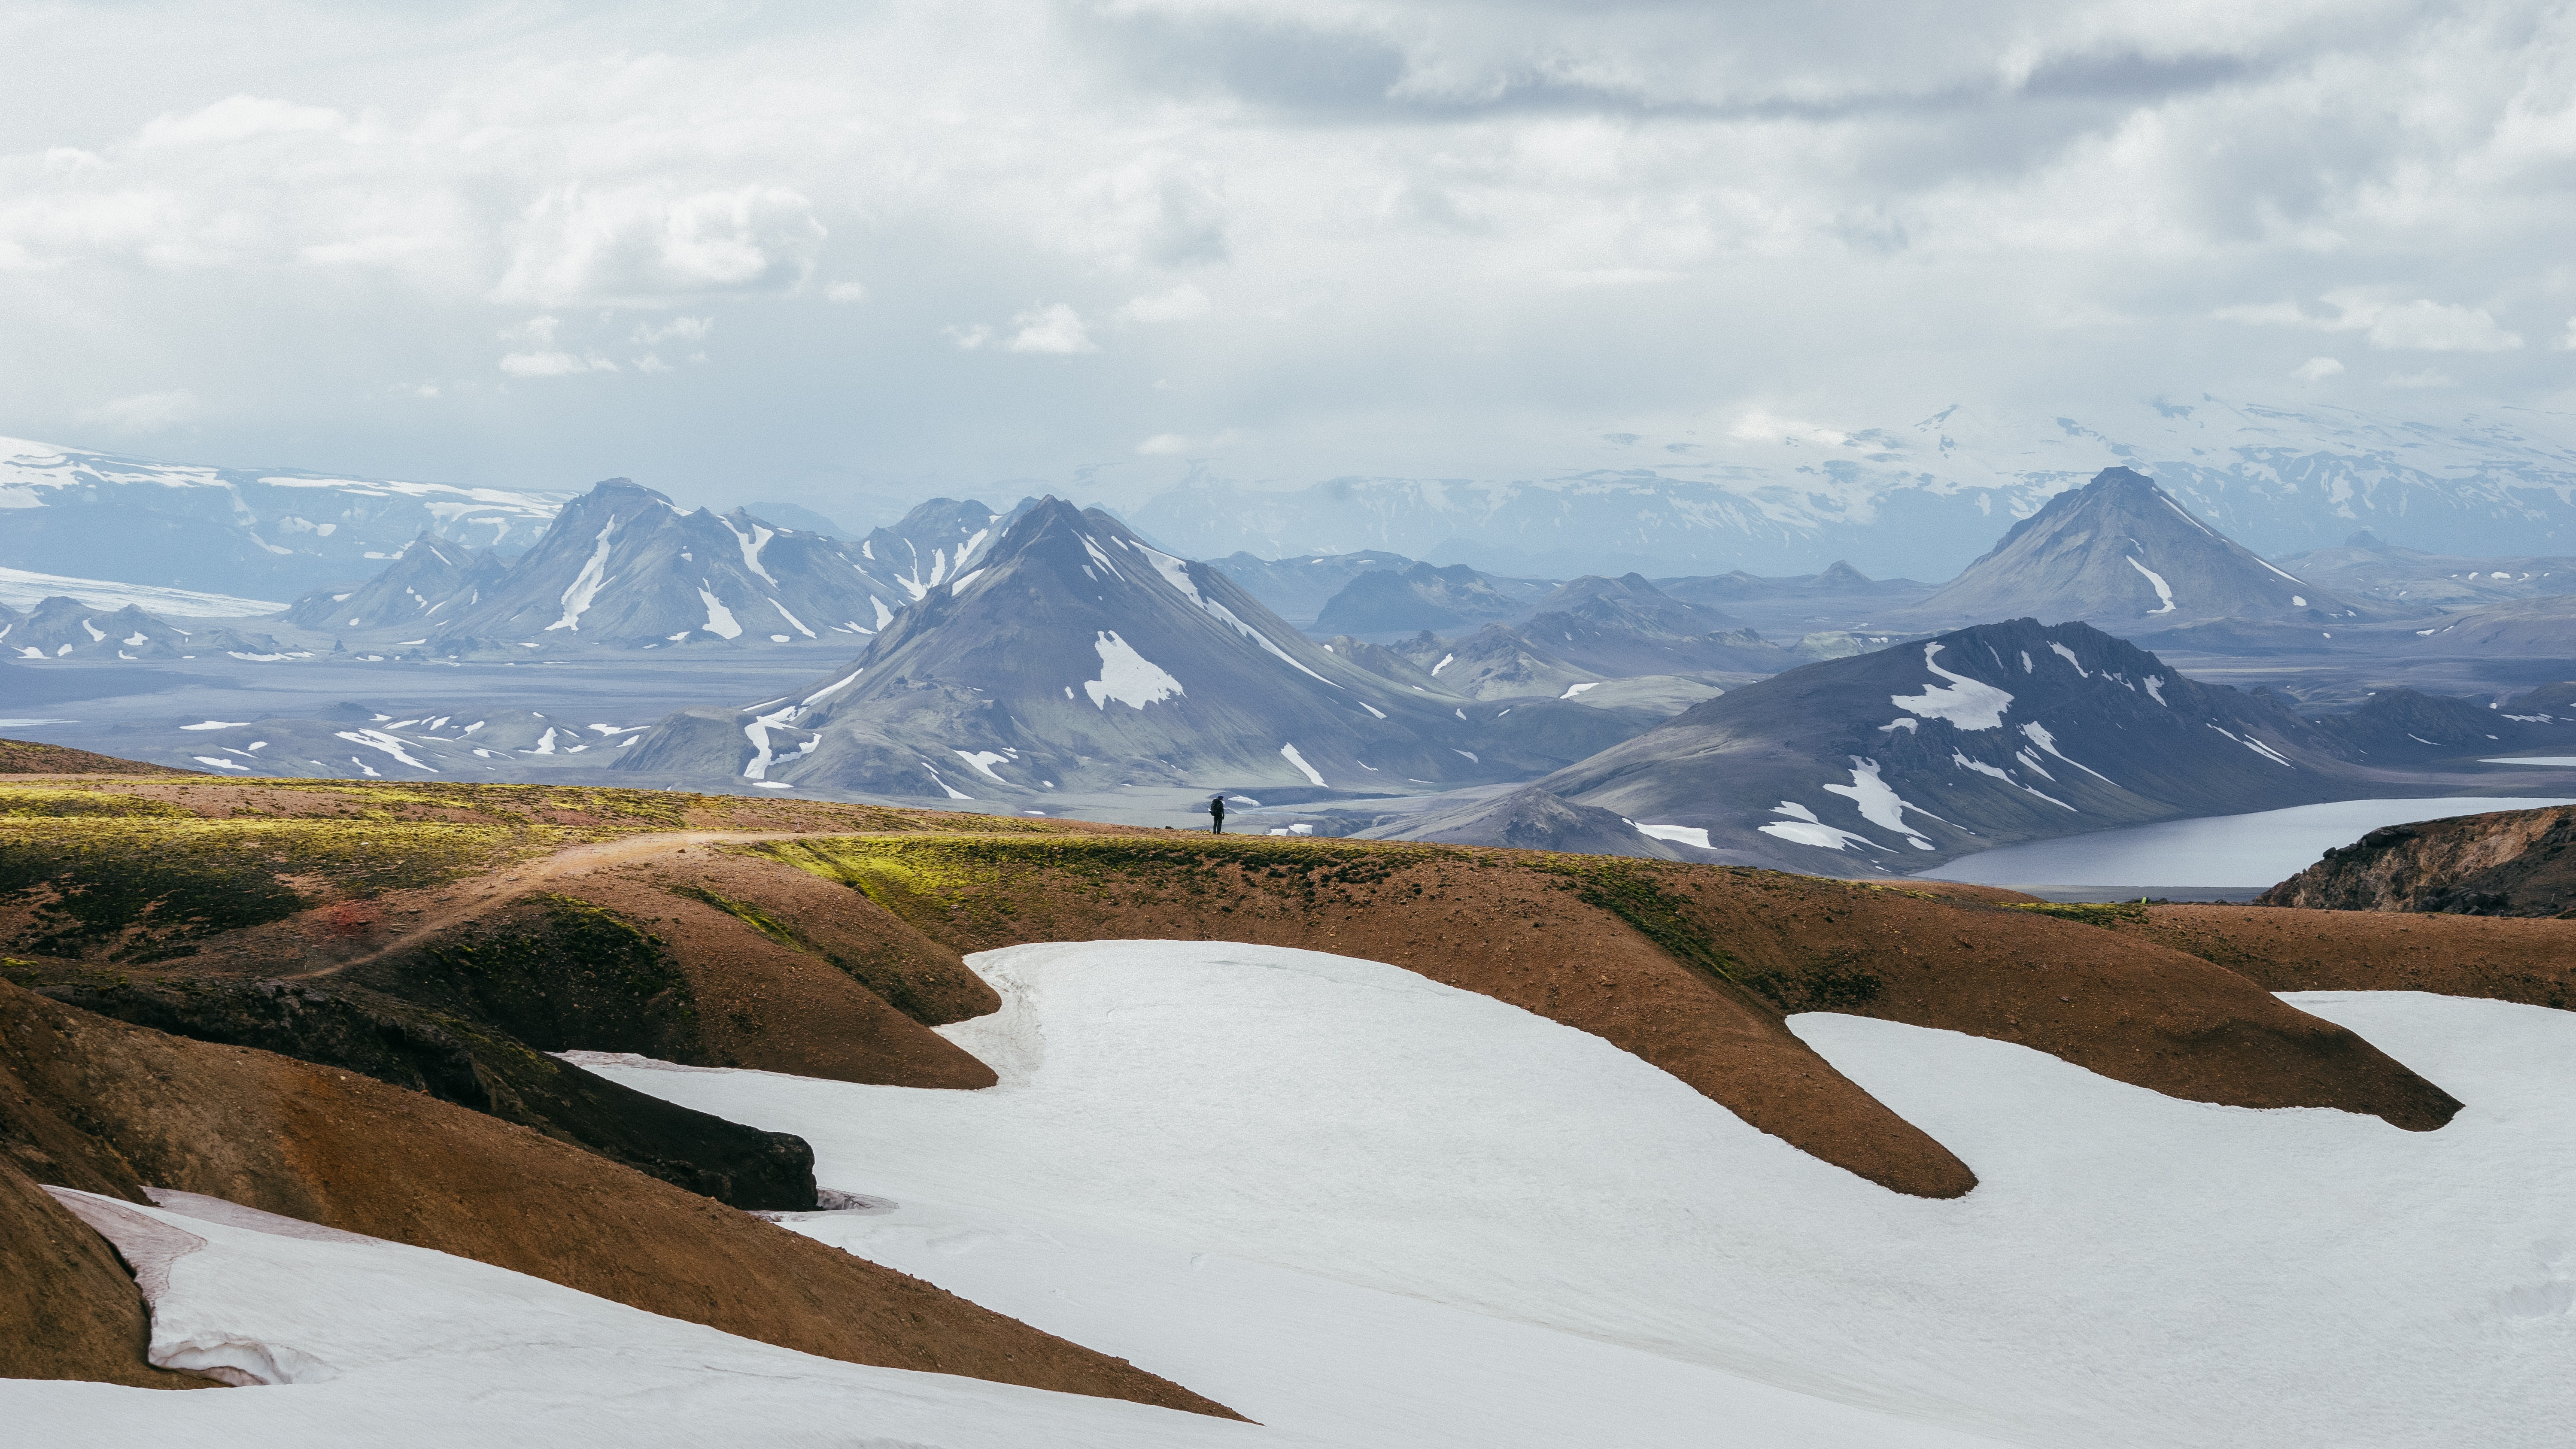 A person in the distance stands on a ridge and looks out at snowy mountains